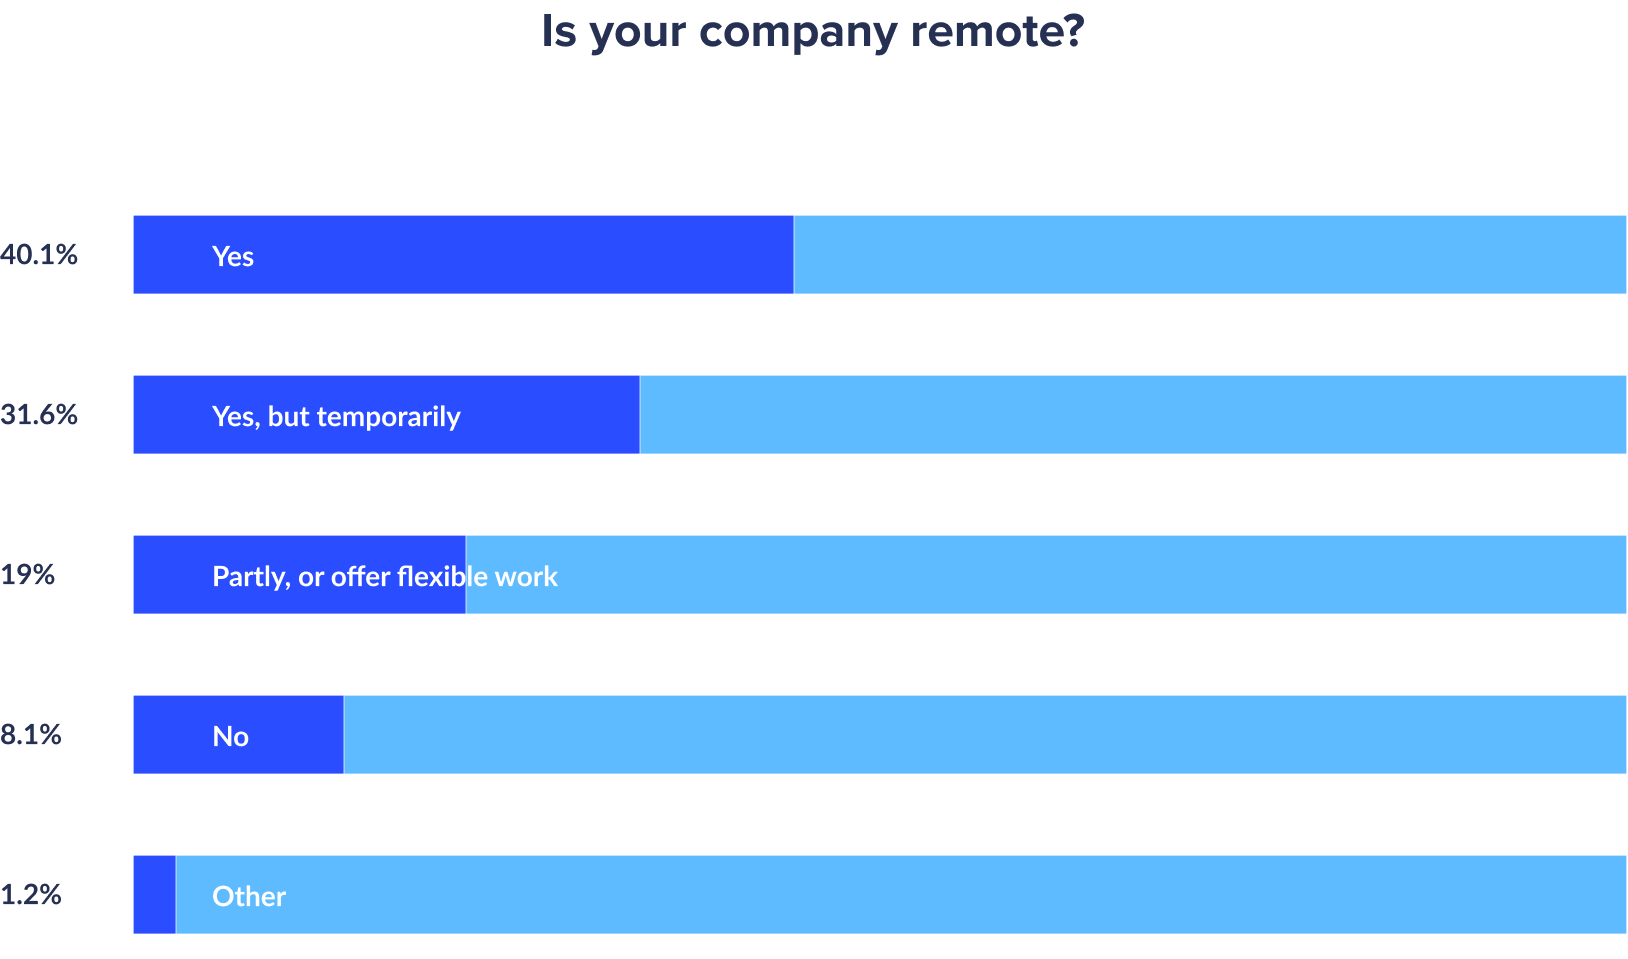 percentage of companies working remotely